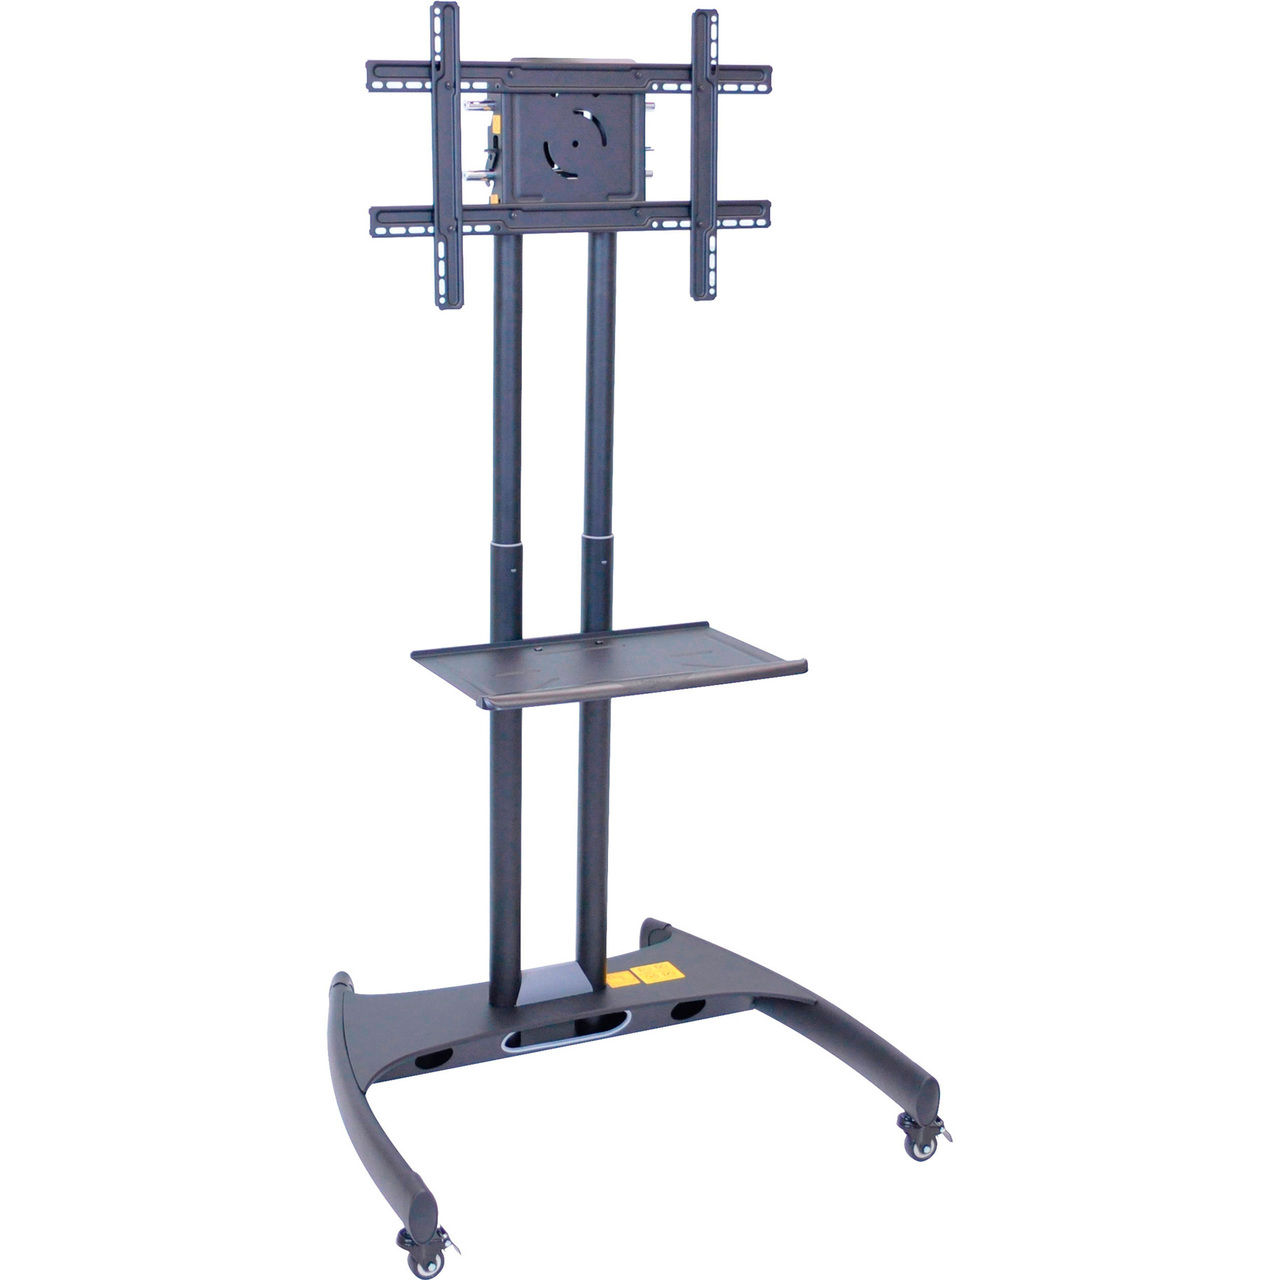 Luxor FP2500 Adjustable Height T.V. Stand LUX-FP2500